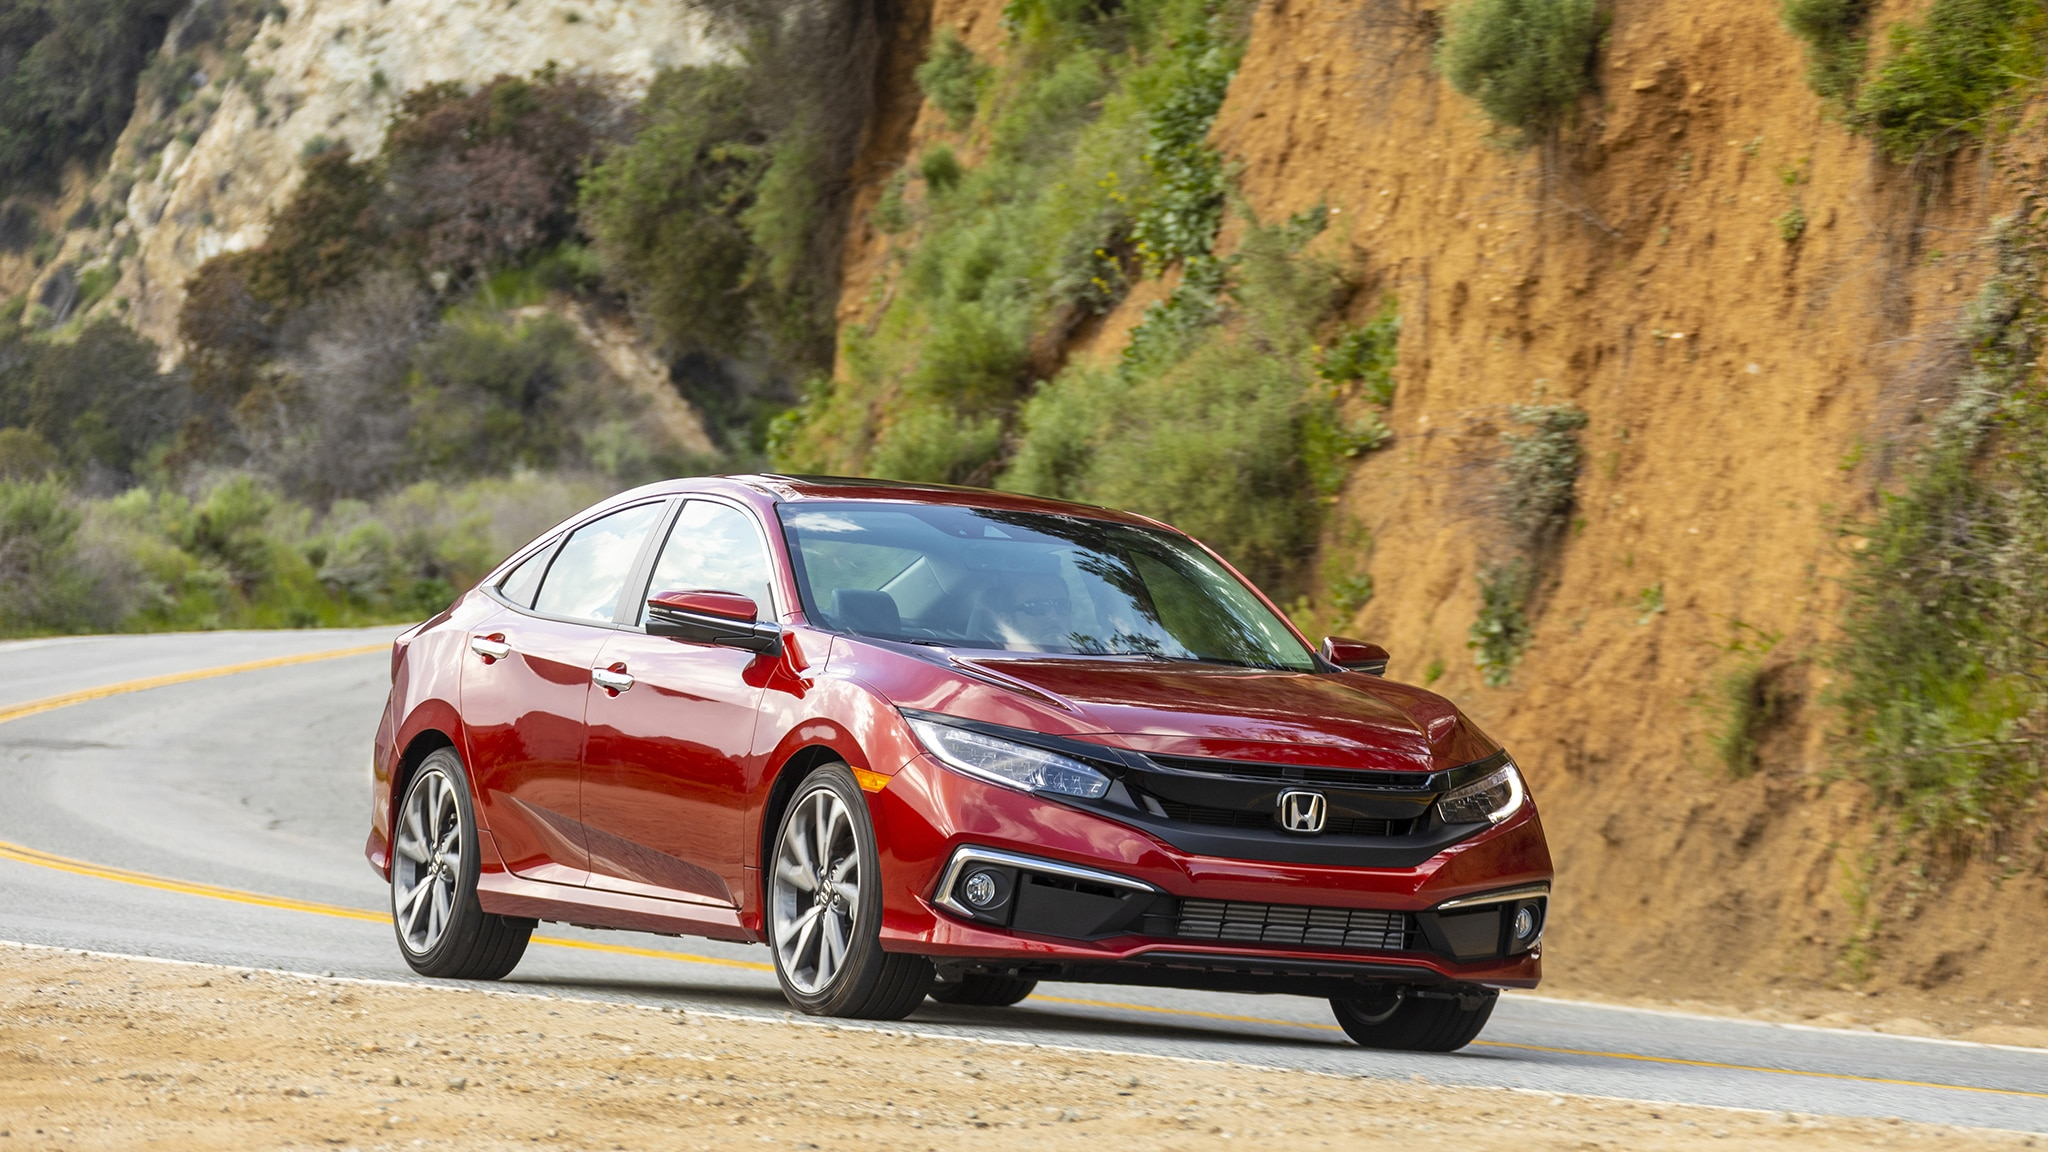 2019 Honda Civic First Drive: How Its Changes Make It Even